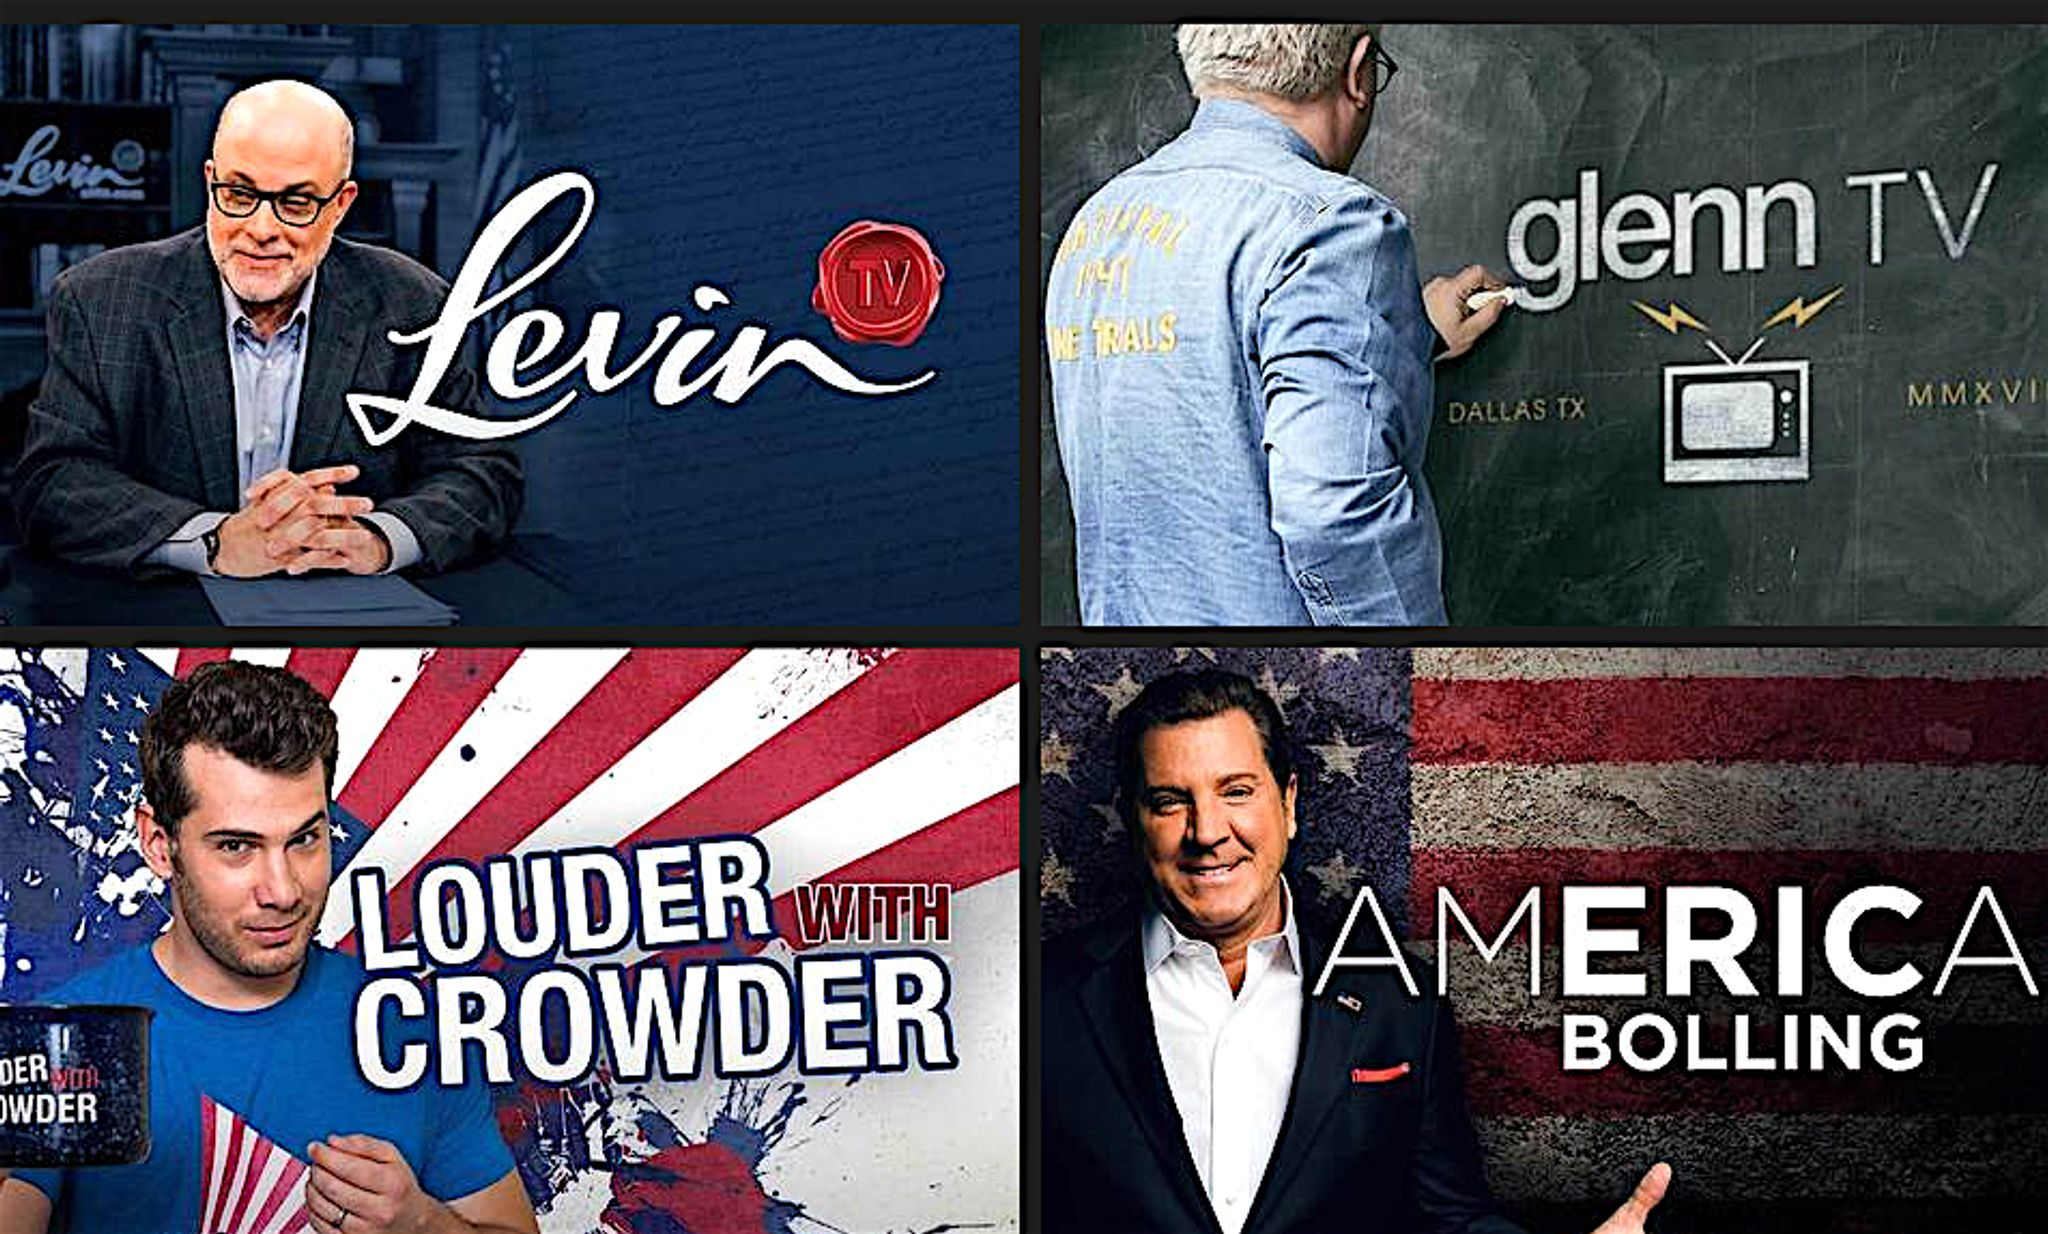 verizon fios drops blazetv conservative channel founded by mark